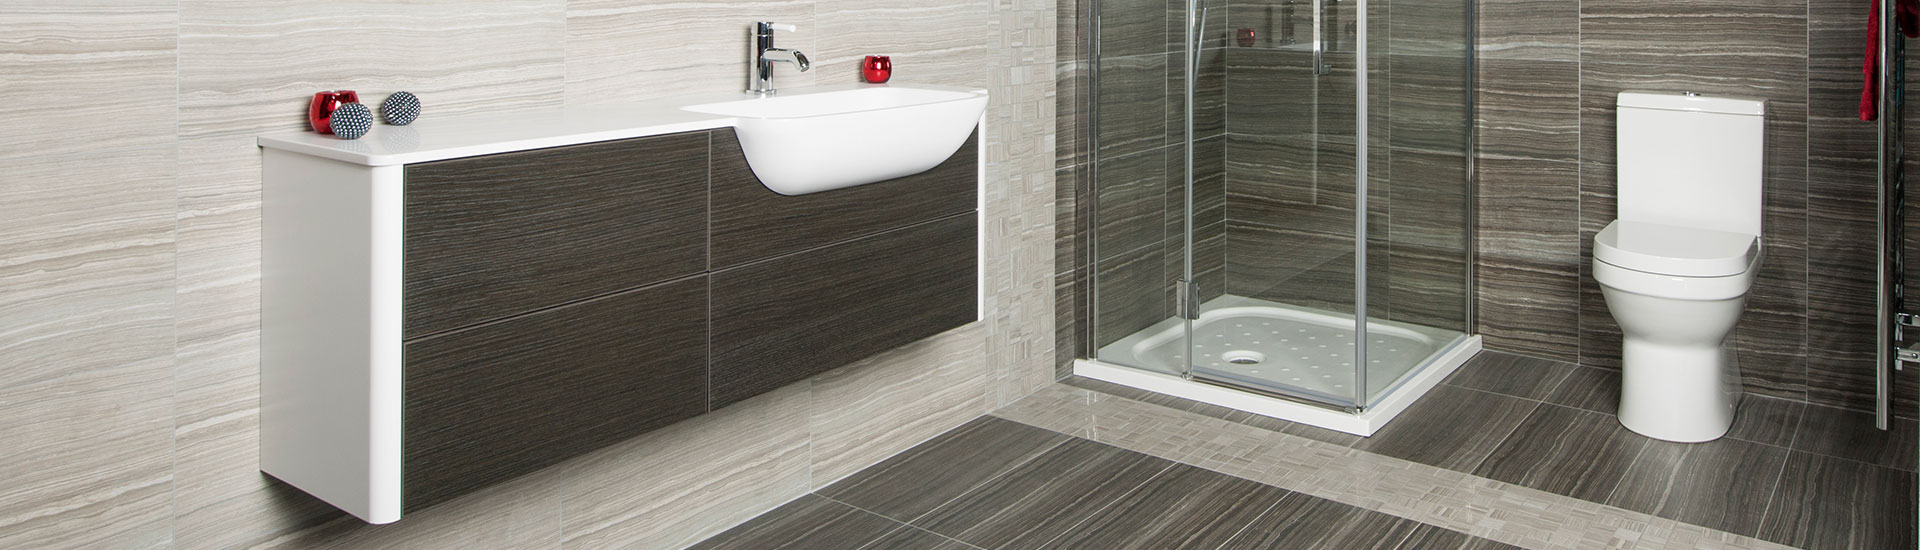 mdc-tiles-and-bathrooms-h02